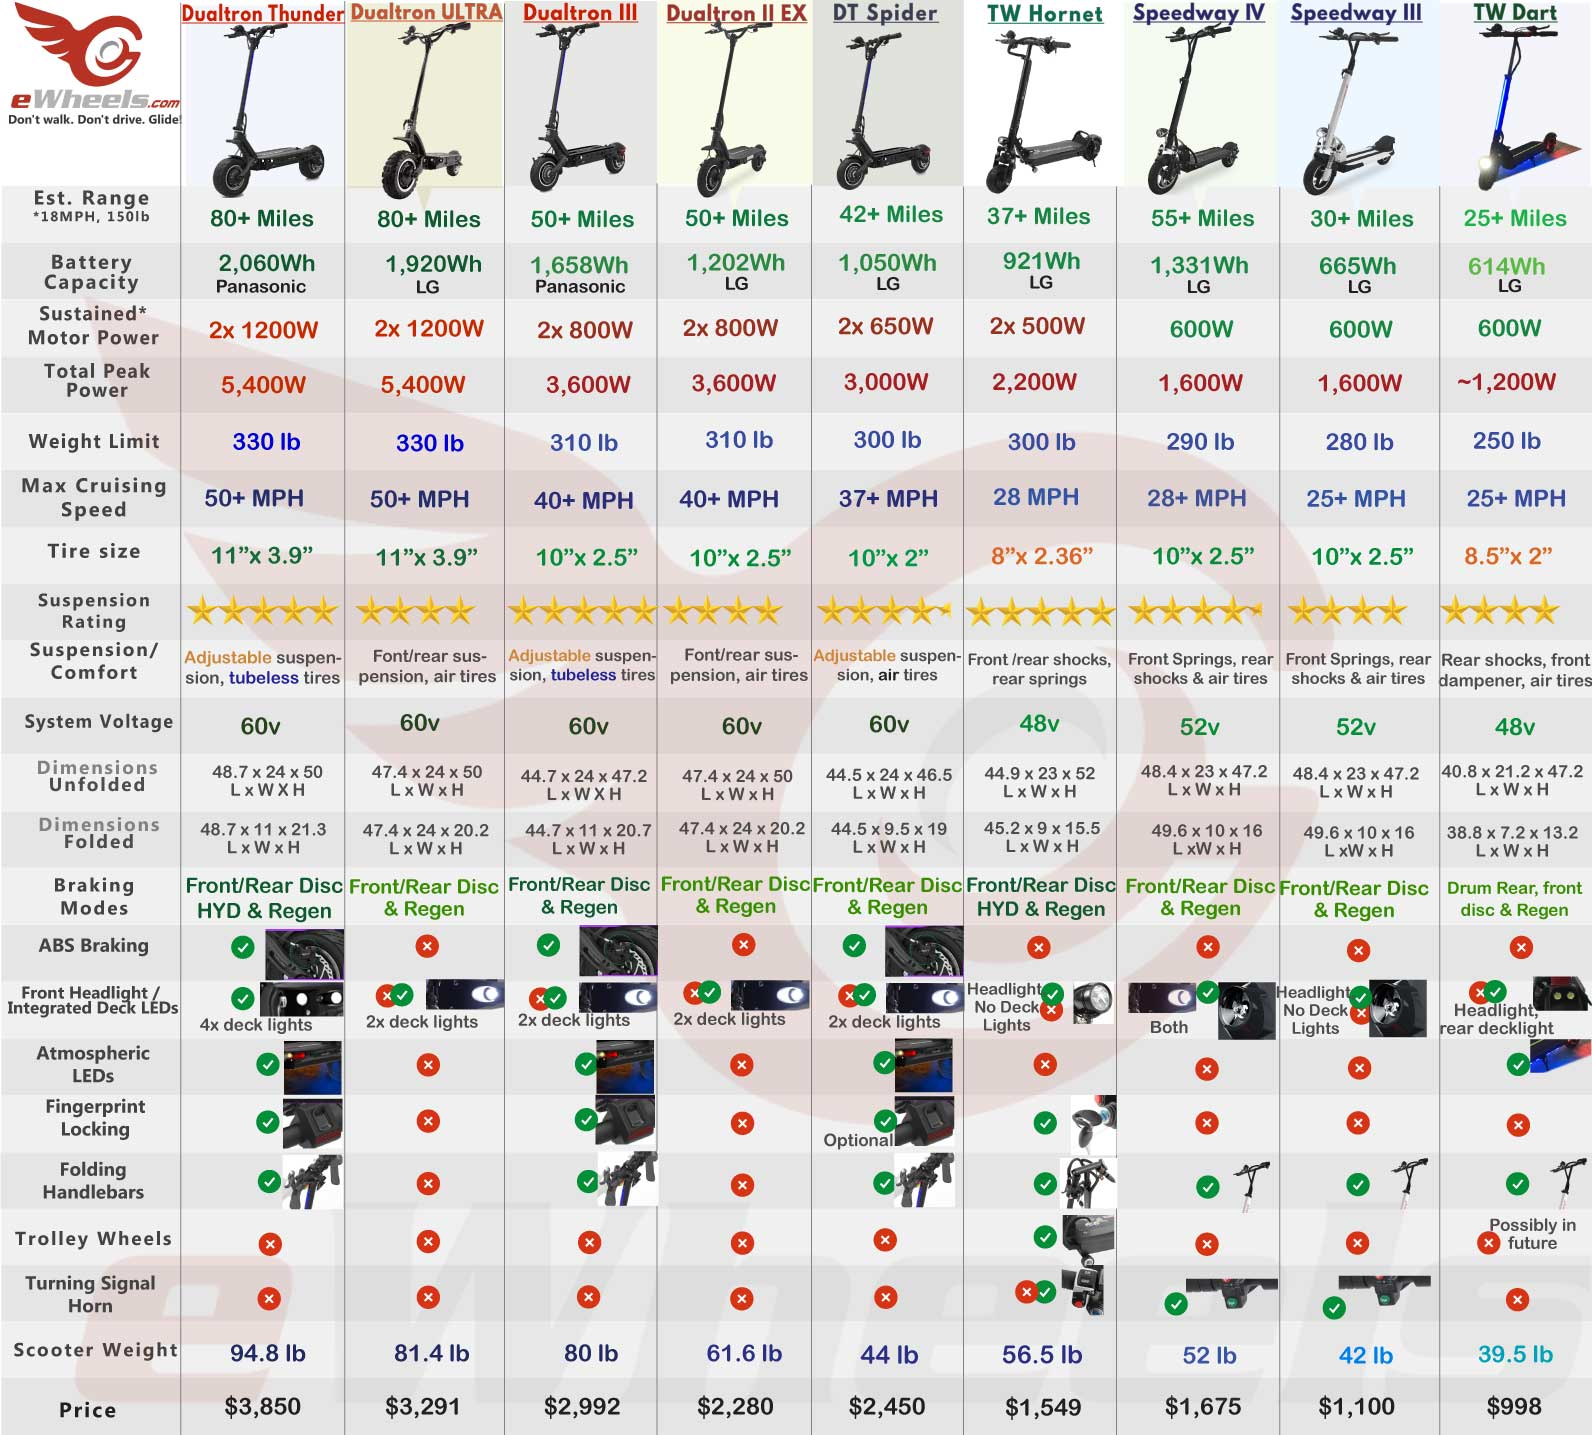 Electric Scooter Comparison Chart Table of Specifications, Dualtron, Speedway, Turbowheel, Ninebot Inmotion